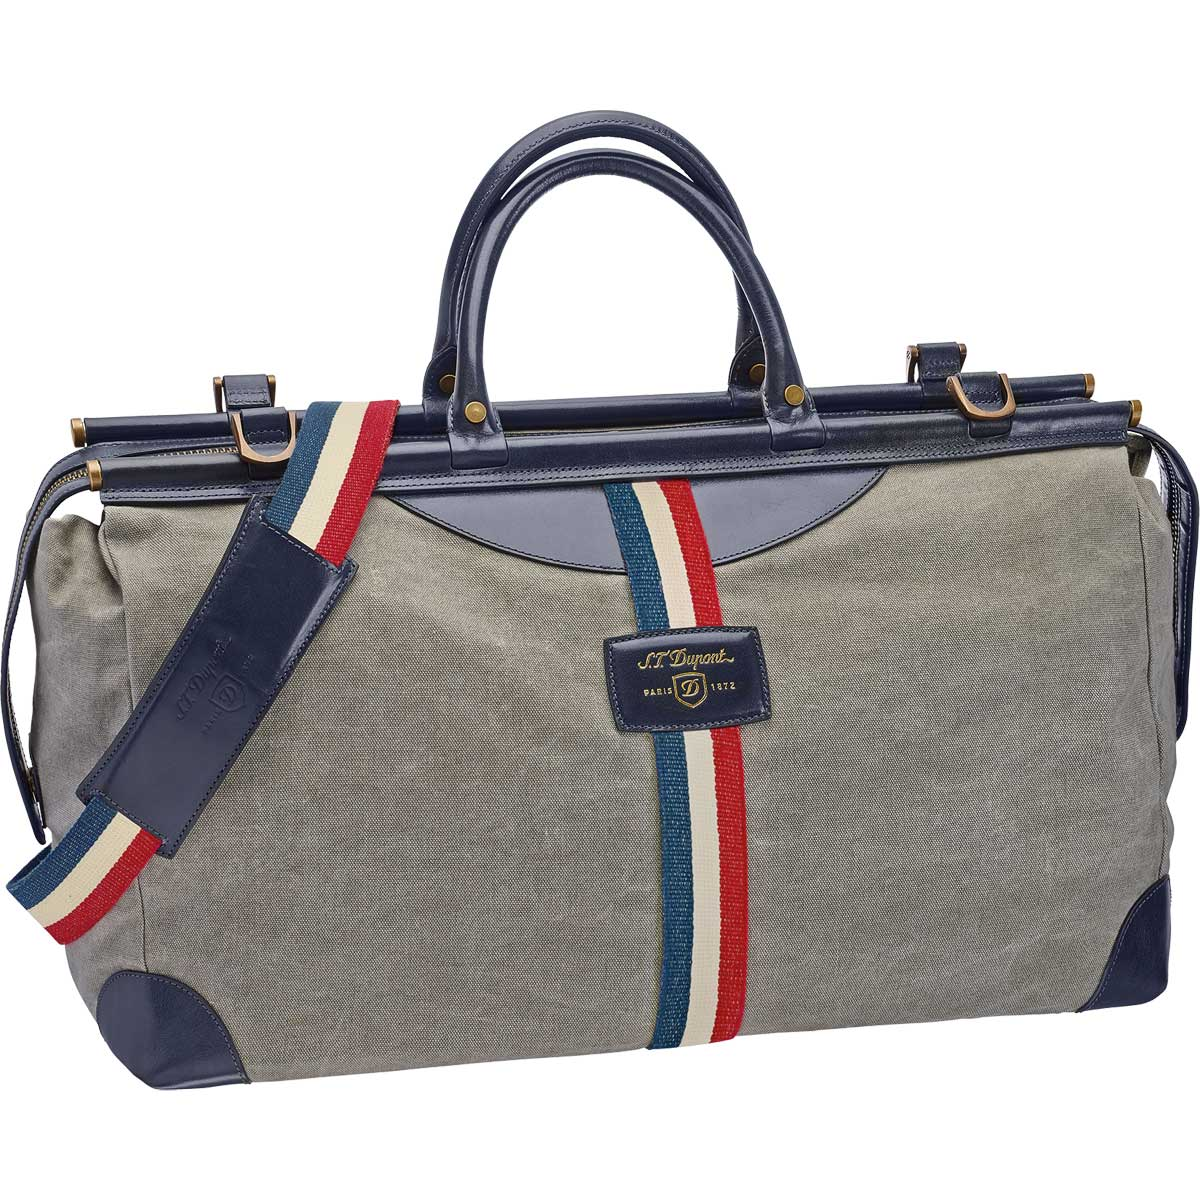 ST Dupont Iconic Bogie Duffle Bag - Gray Canvas / Blue Leather